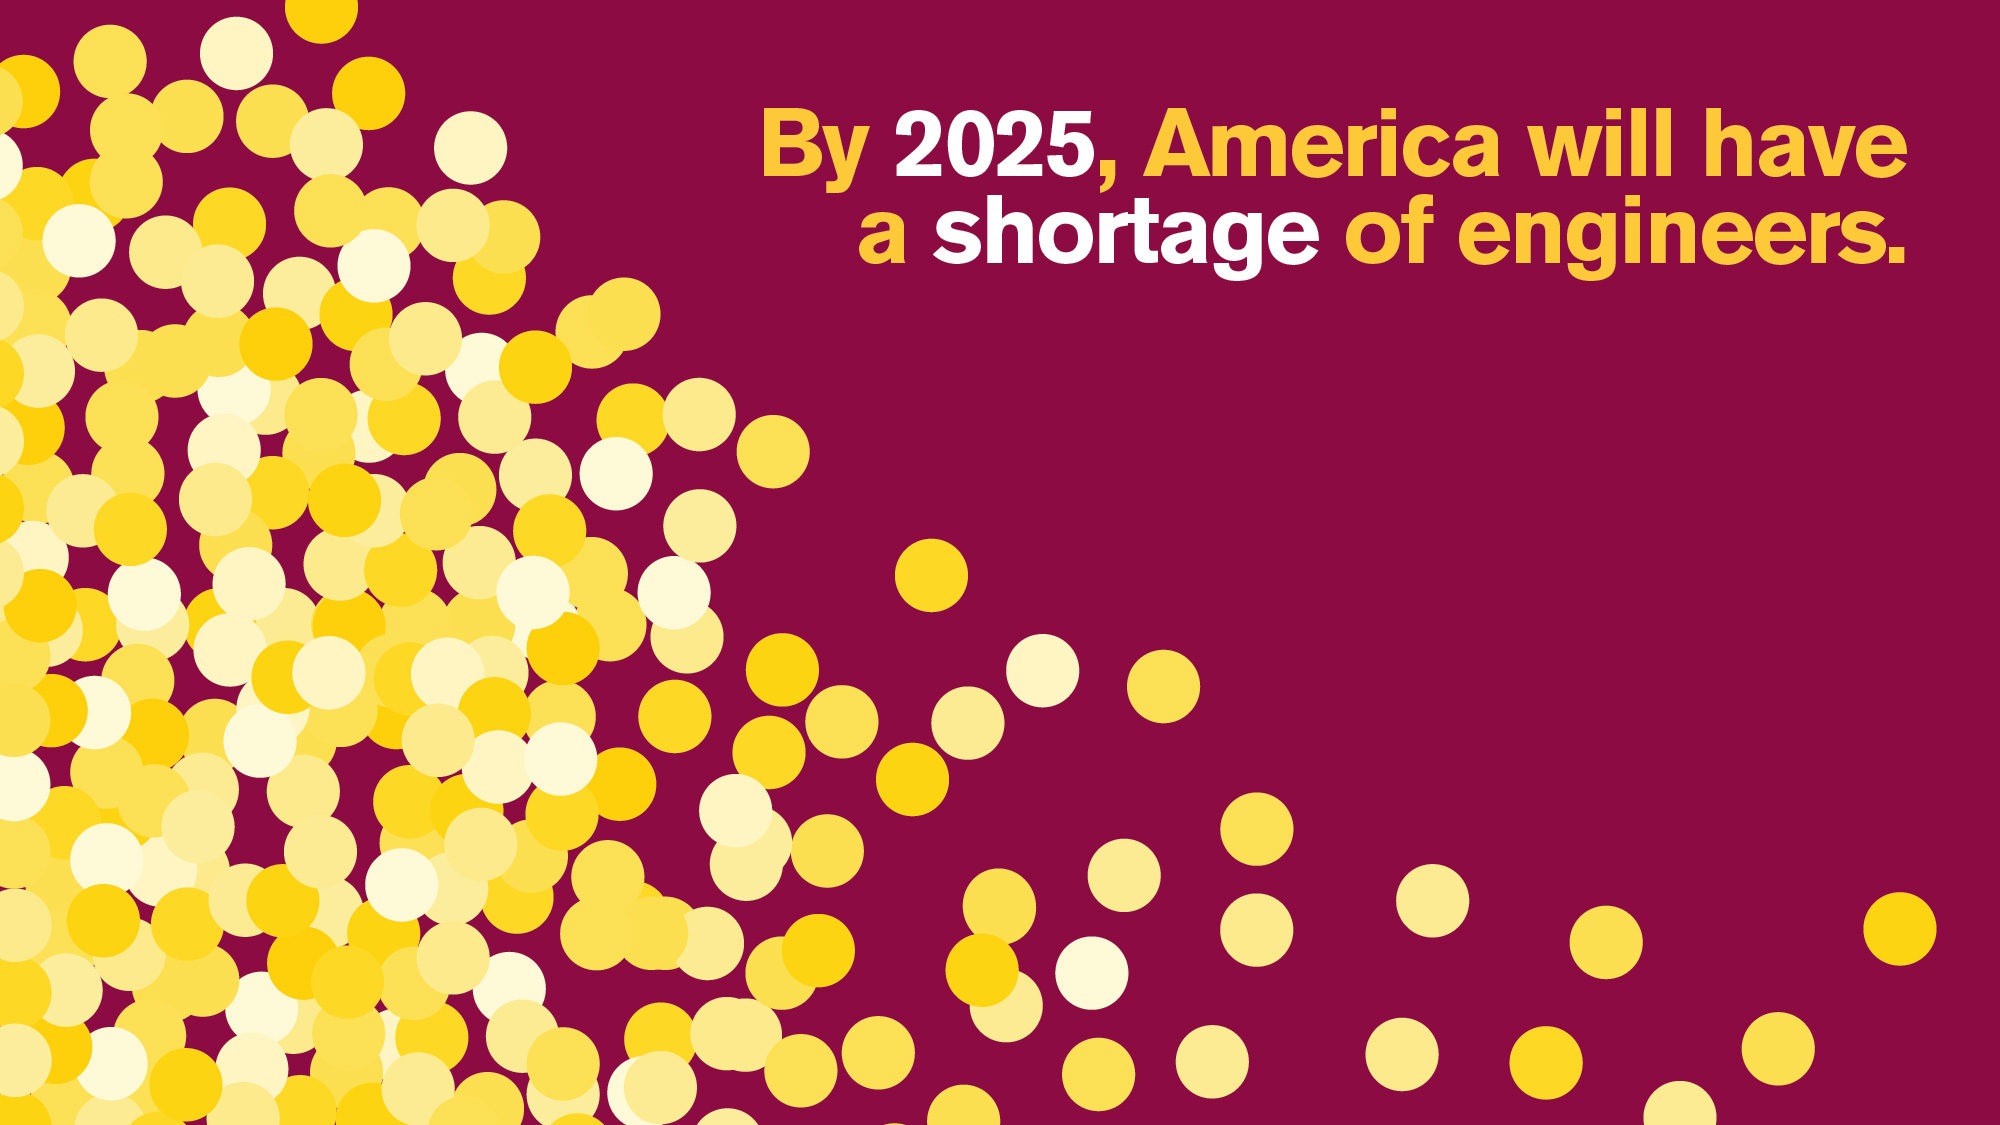 By 2025, America will have a shortage of engineers